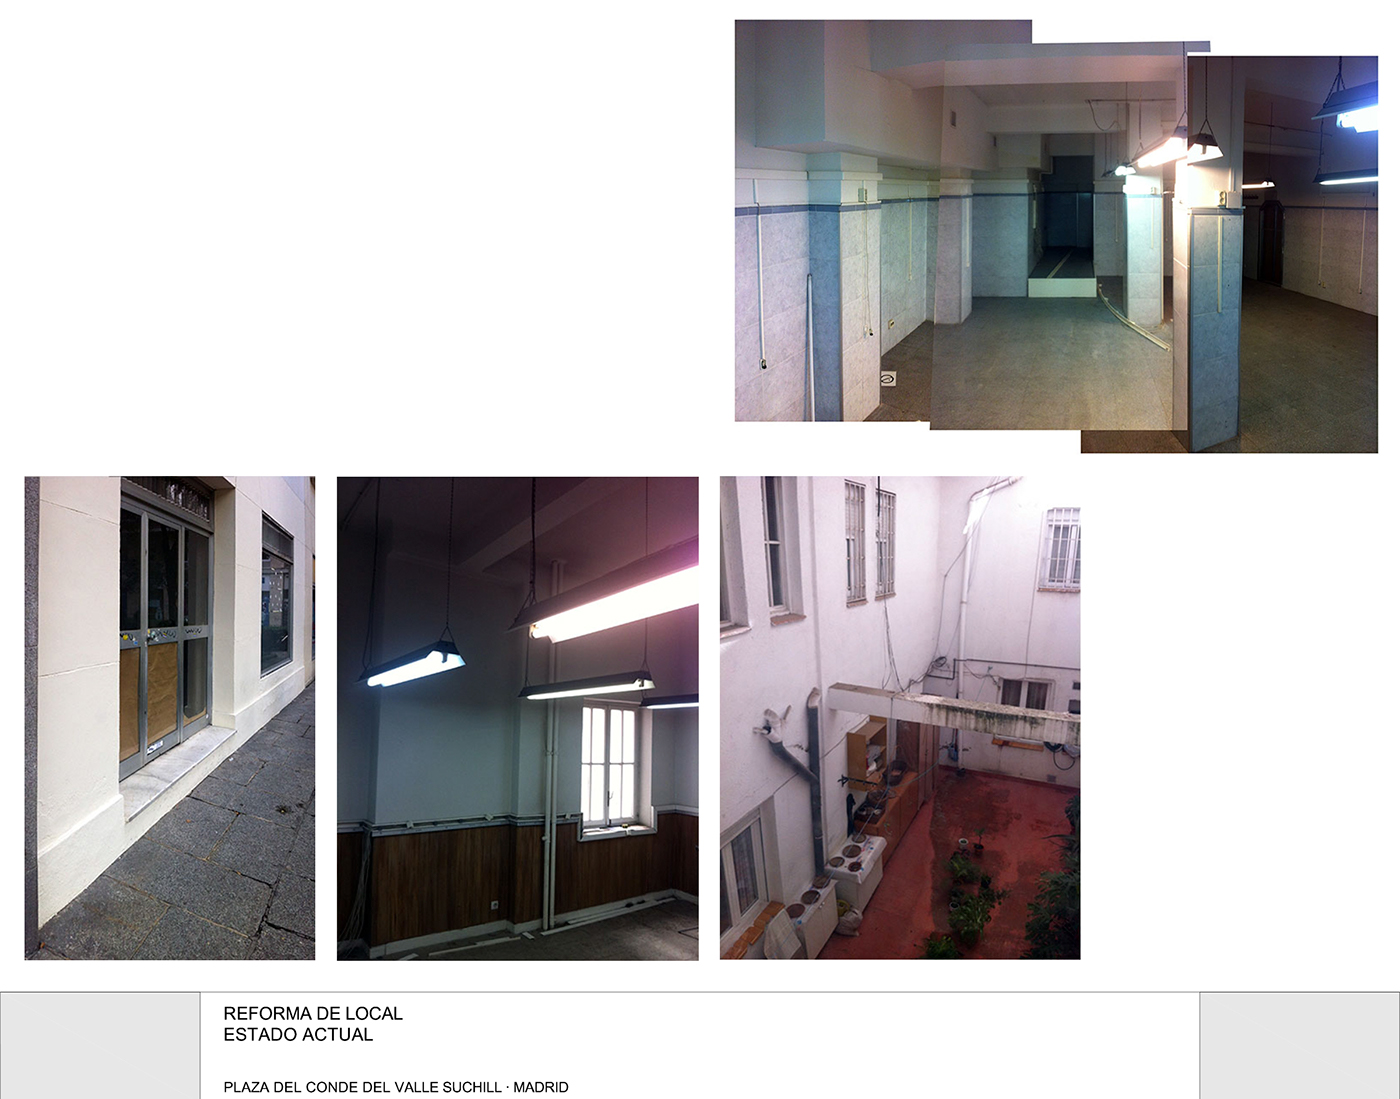 medical reform DCV photo project managment work managment remodelling